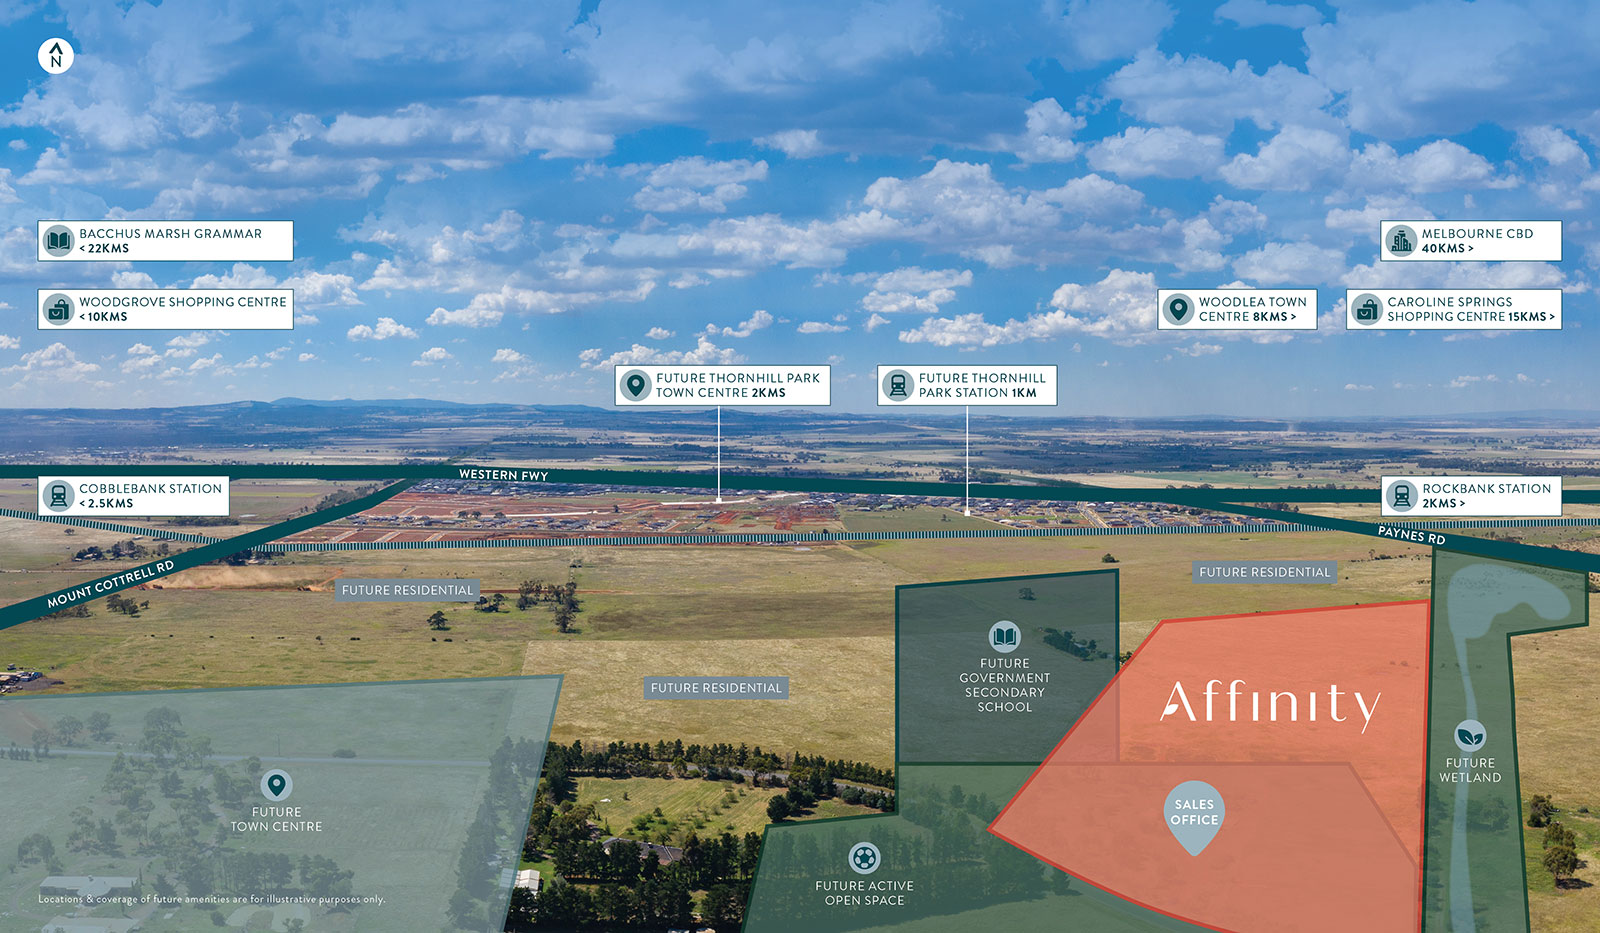 Aerial view of Affinity's location